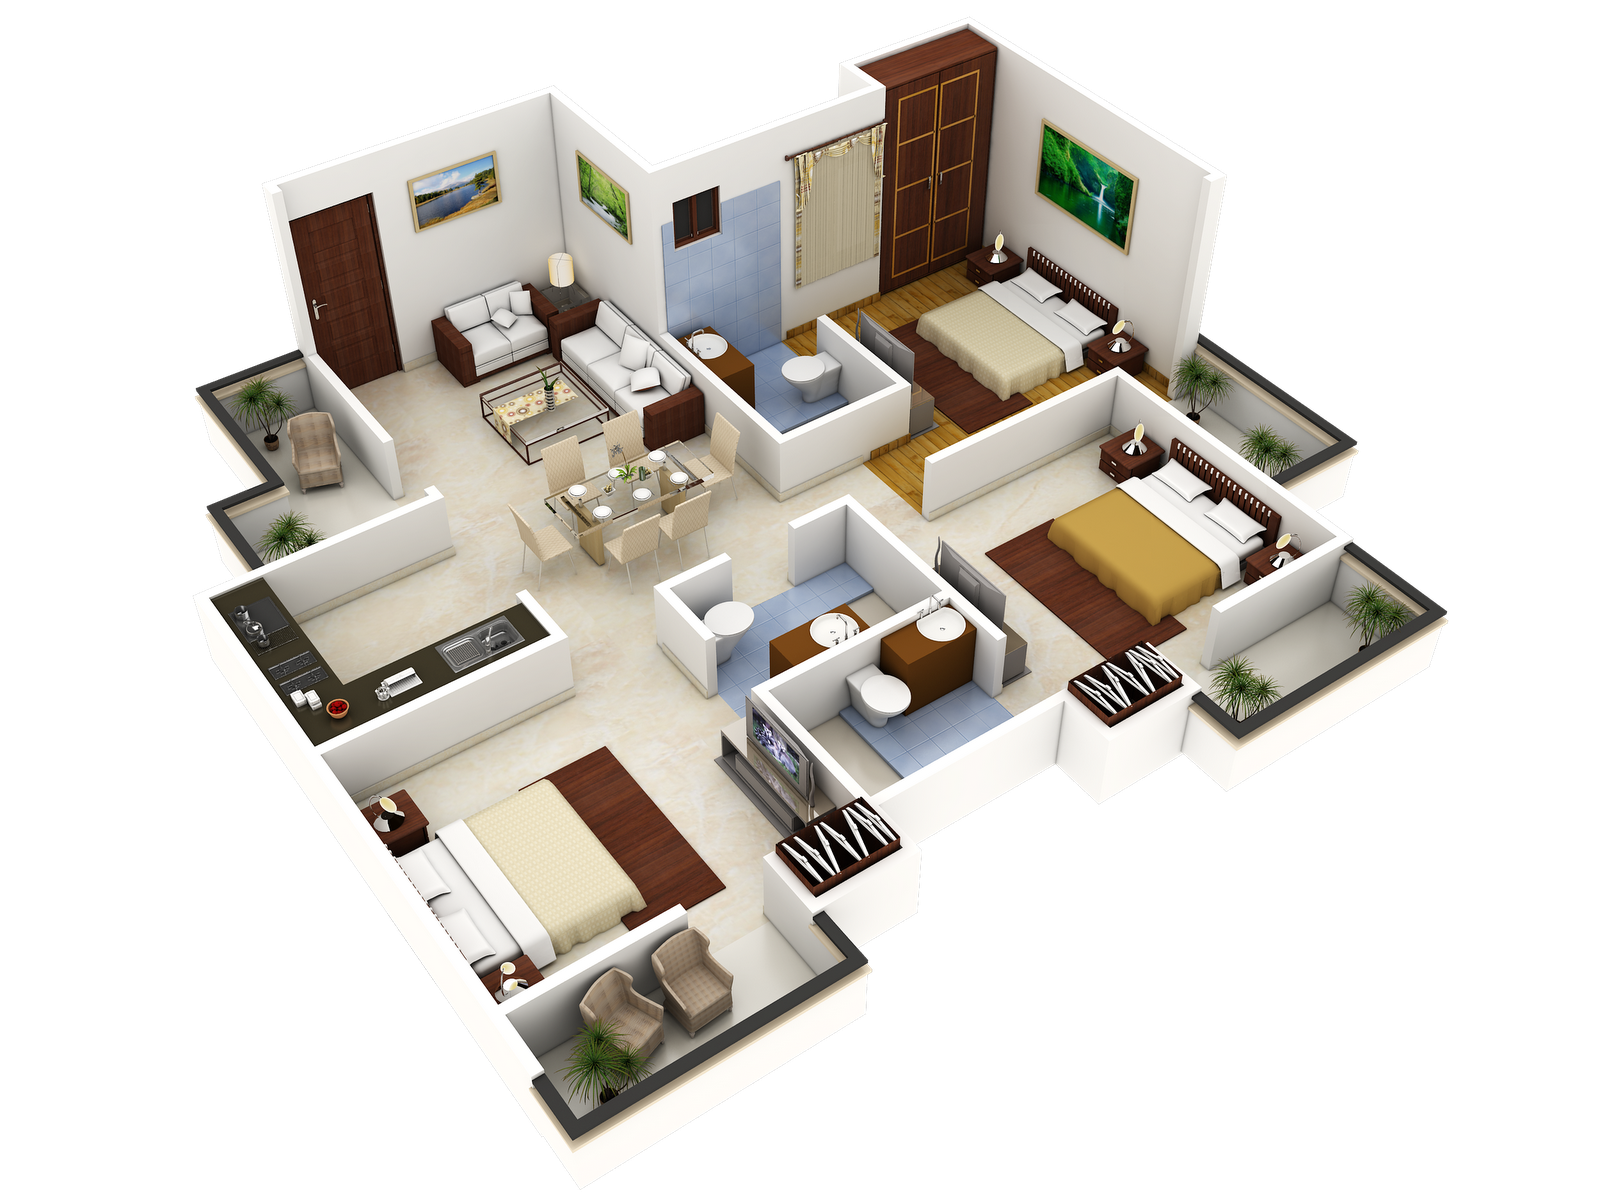 3 bedroom house designs 3d buscar con google grandes mansiones y construcciones pinterest Home design plans 3d